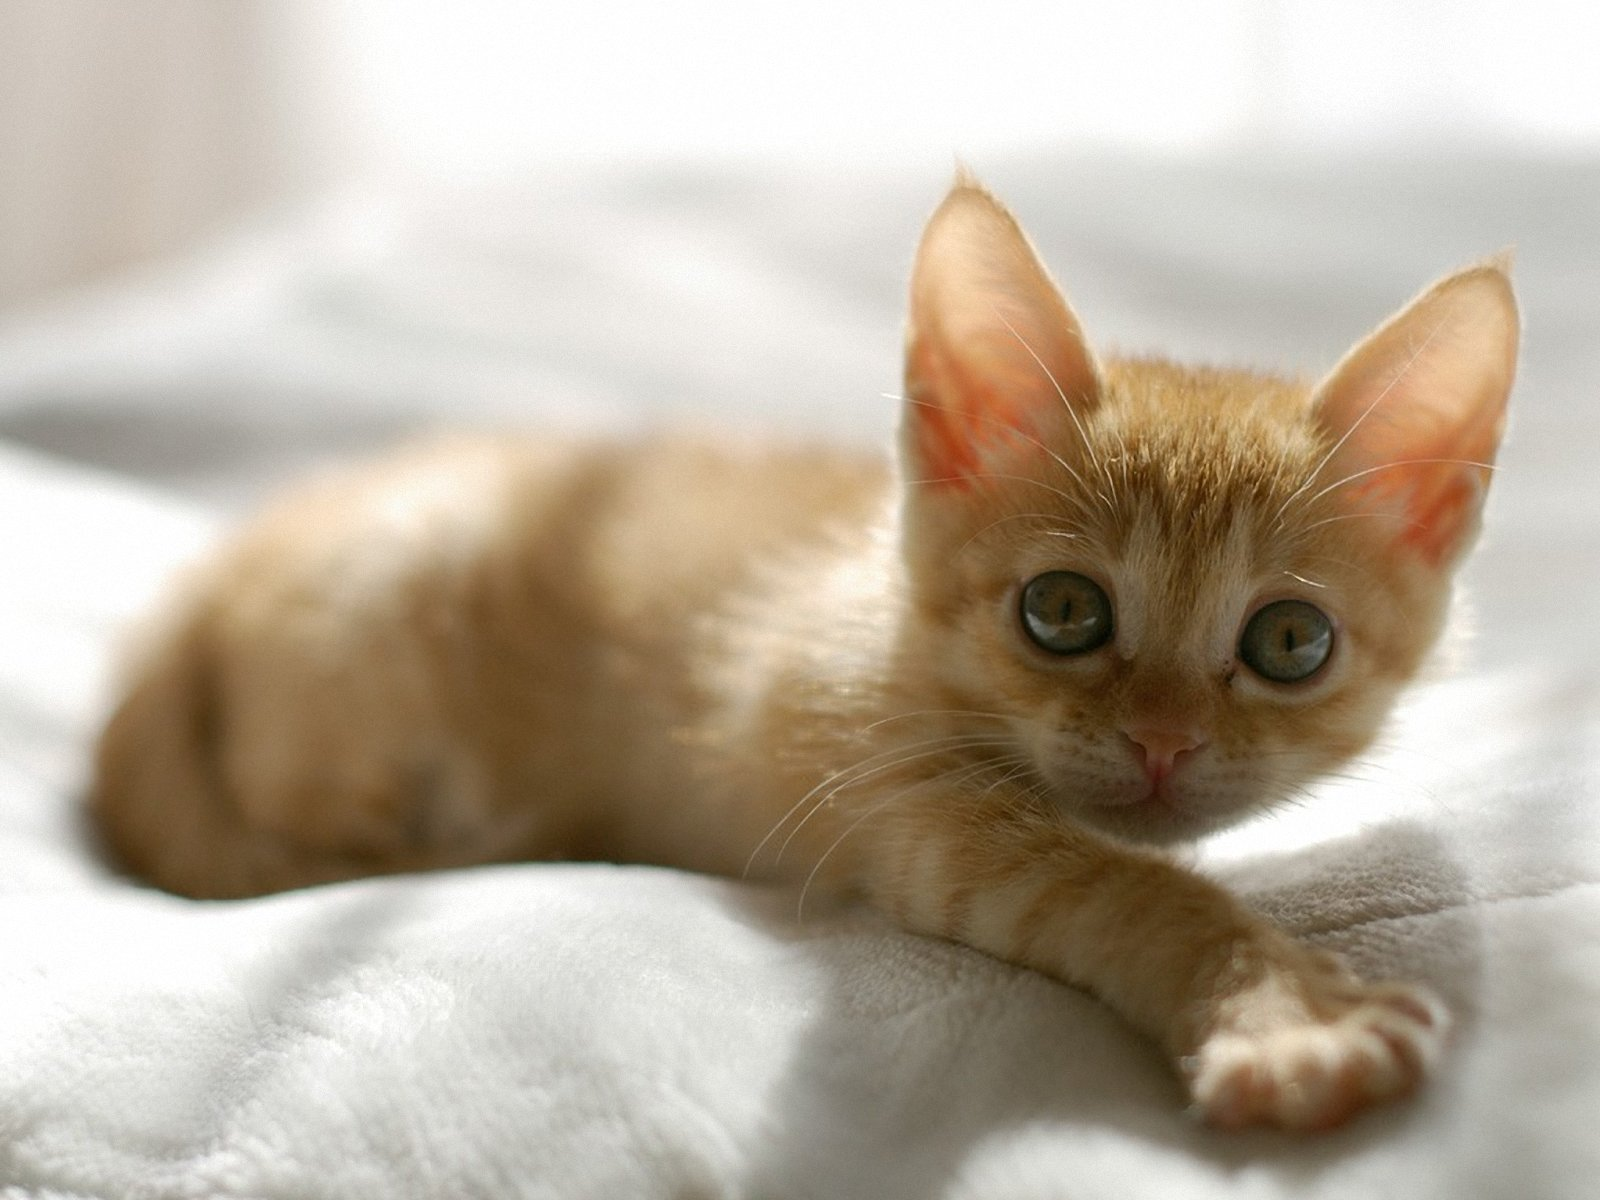 1600x1200 Cute Orange Kitten desktop PC and Mac wallpaper 1600x1200